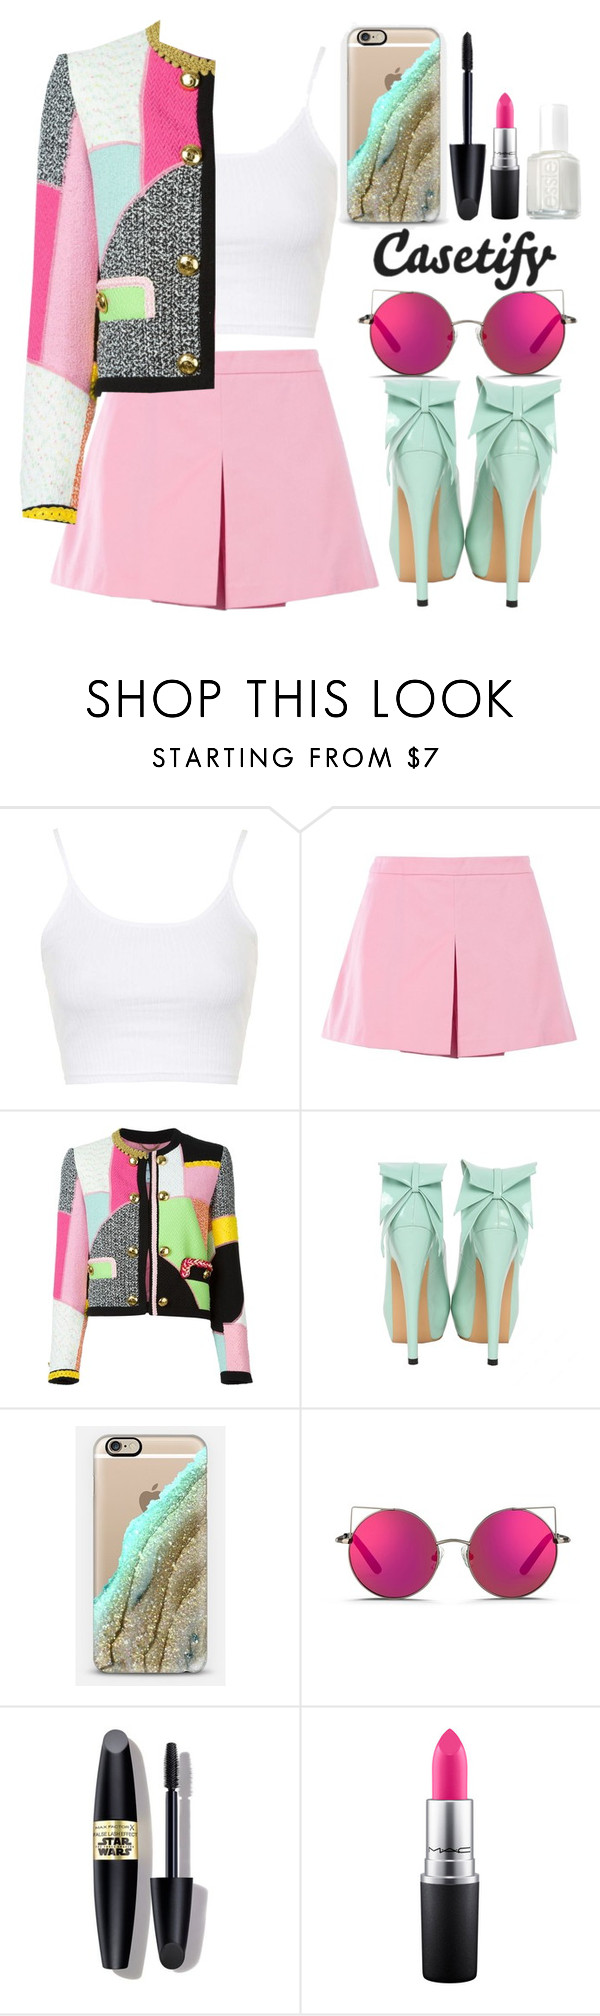 """""""Casetify"""" by gabygirafe ❤ liked on Polyvore featuring Topshop, Love Moschino, Moschino, Casetify, Matthew Williamson, Max Factor, MAC Cosmetics and Essie"""